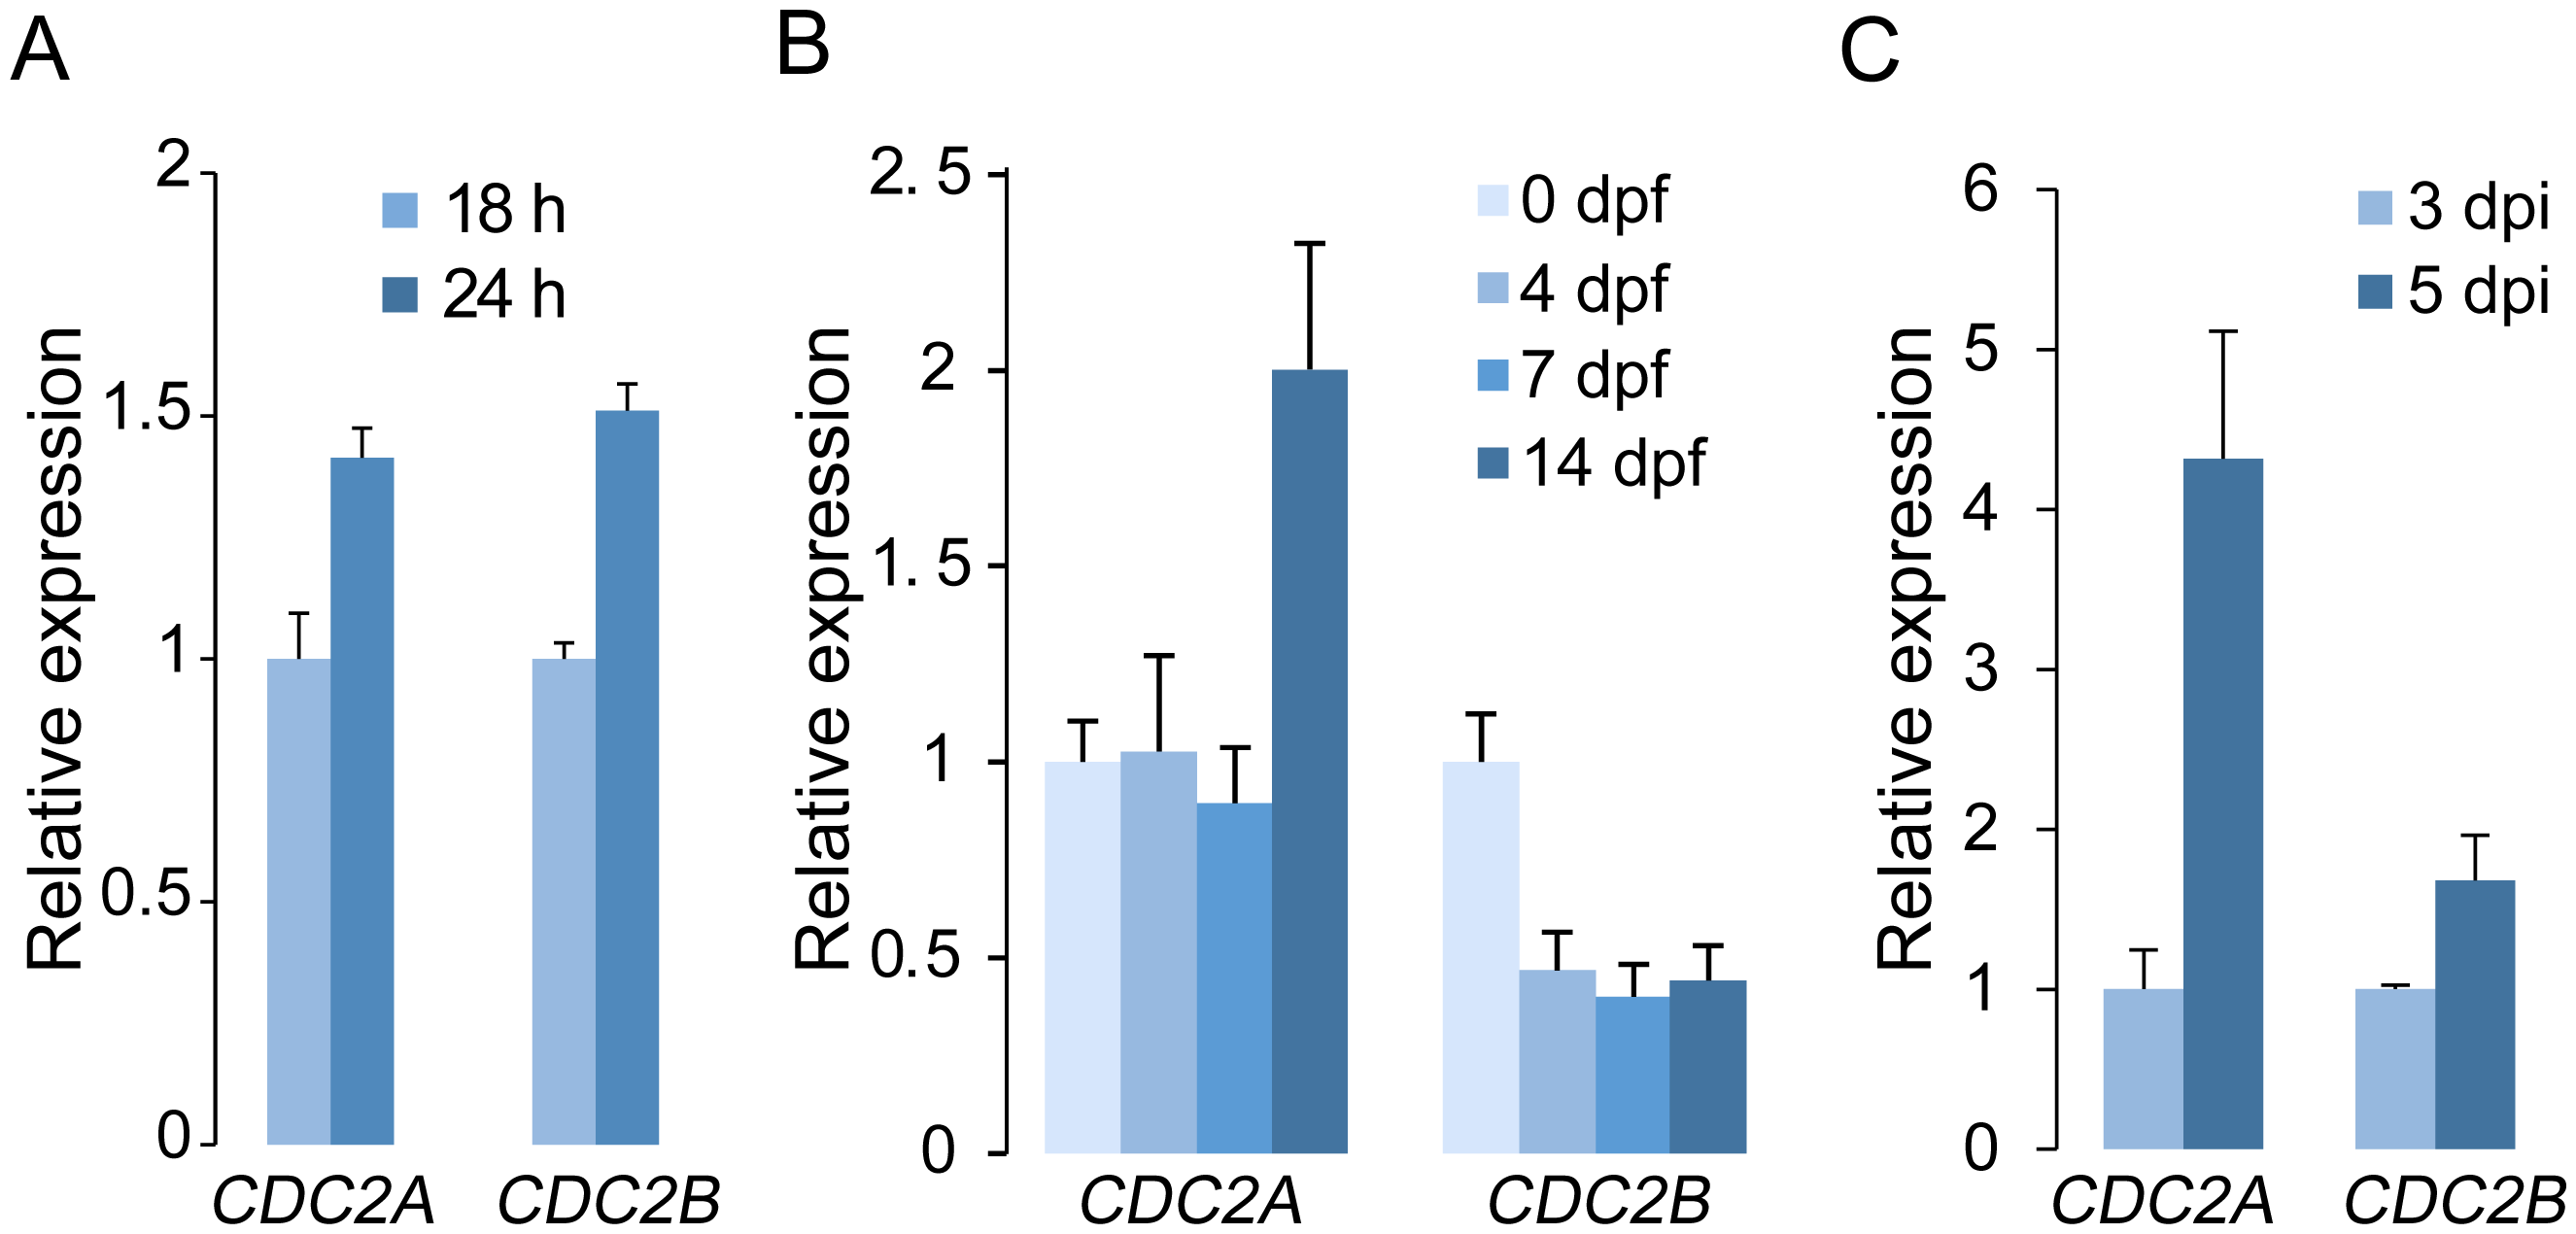 Expression levels of <i>CDC2A</i> and <i>CDC2B</i> assayed by qRT-PCR.